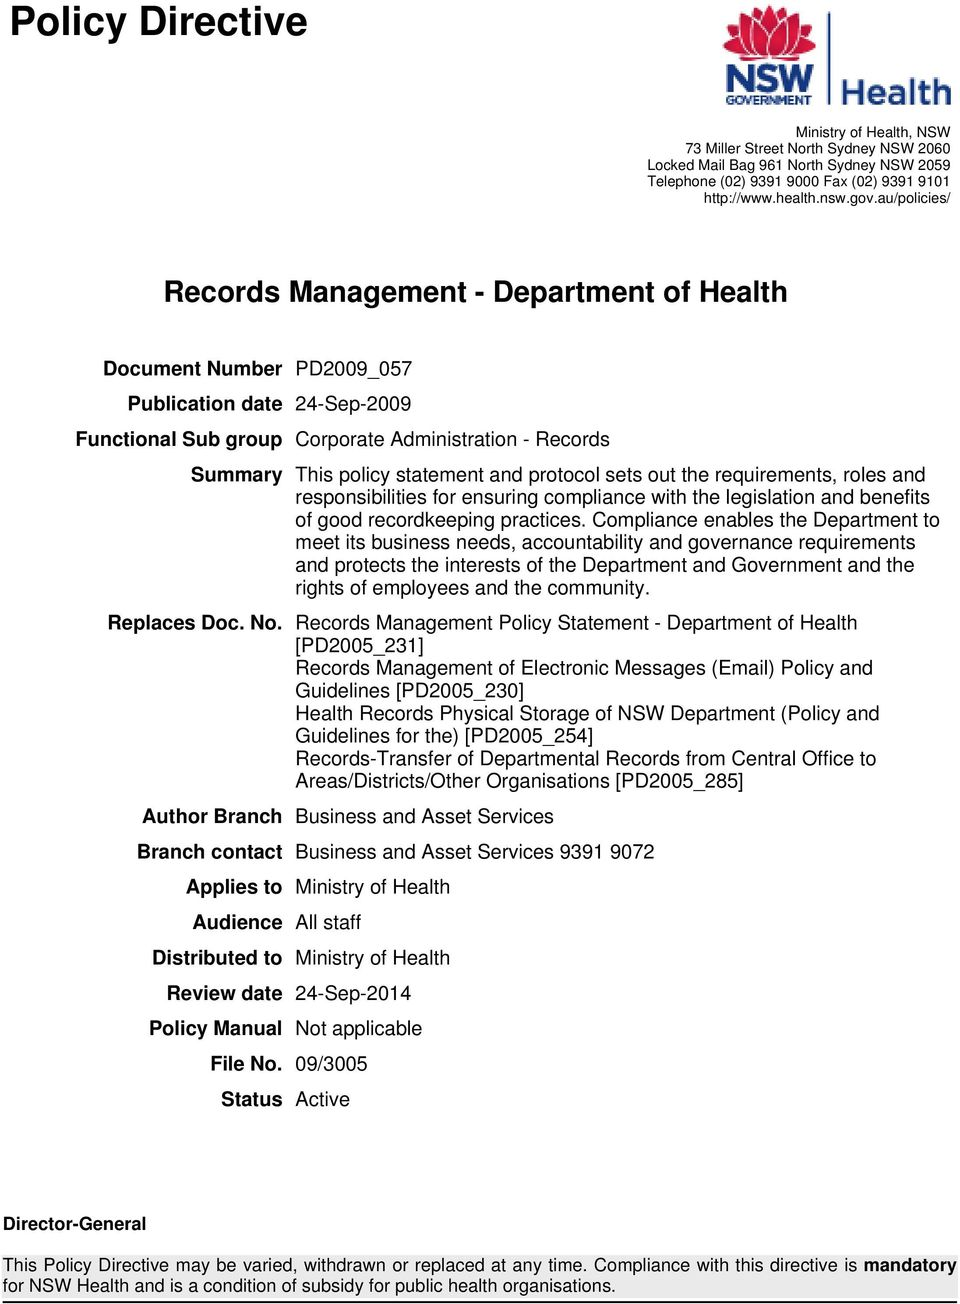 Records Management - Department of Health - PDF